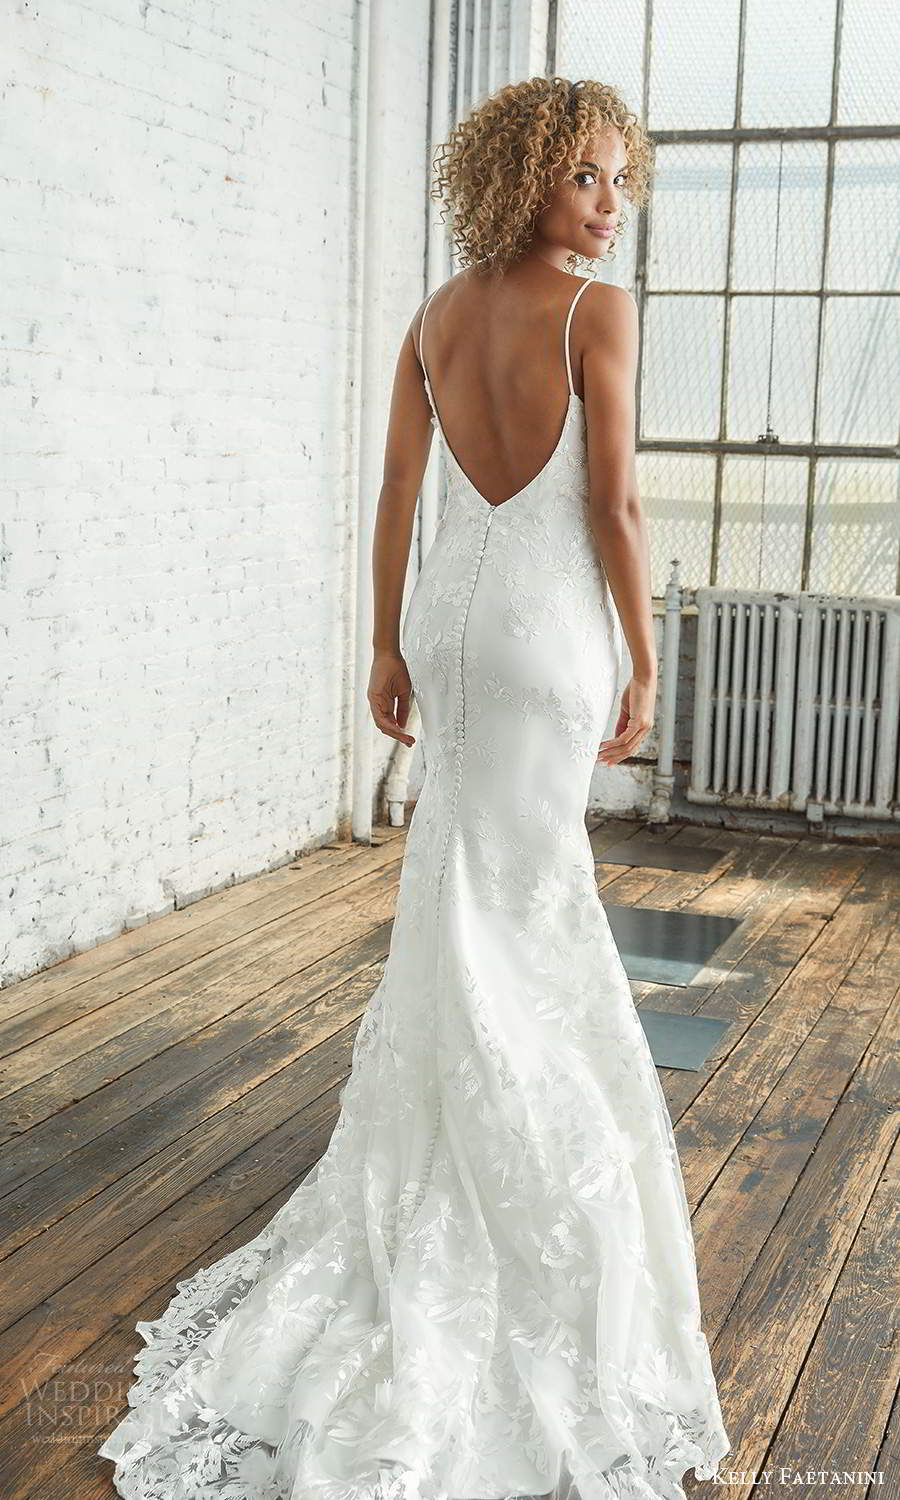 kelly faetanini 2021 bridal sleeveless thin straps scoop neckline fully embellished fit flare mermaid wedding dress chapel train low back (10) bv